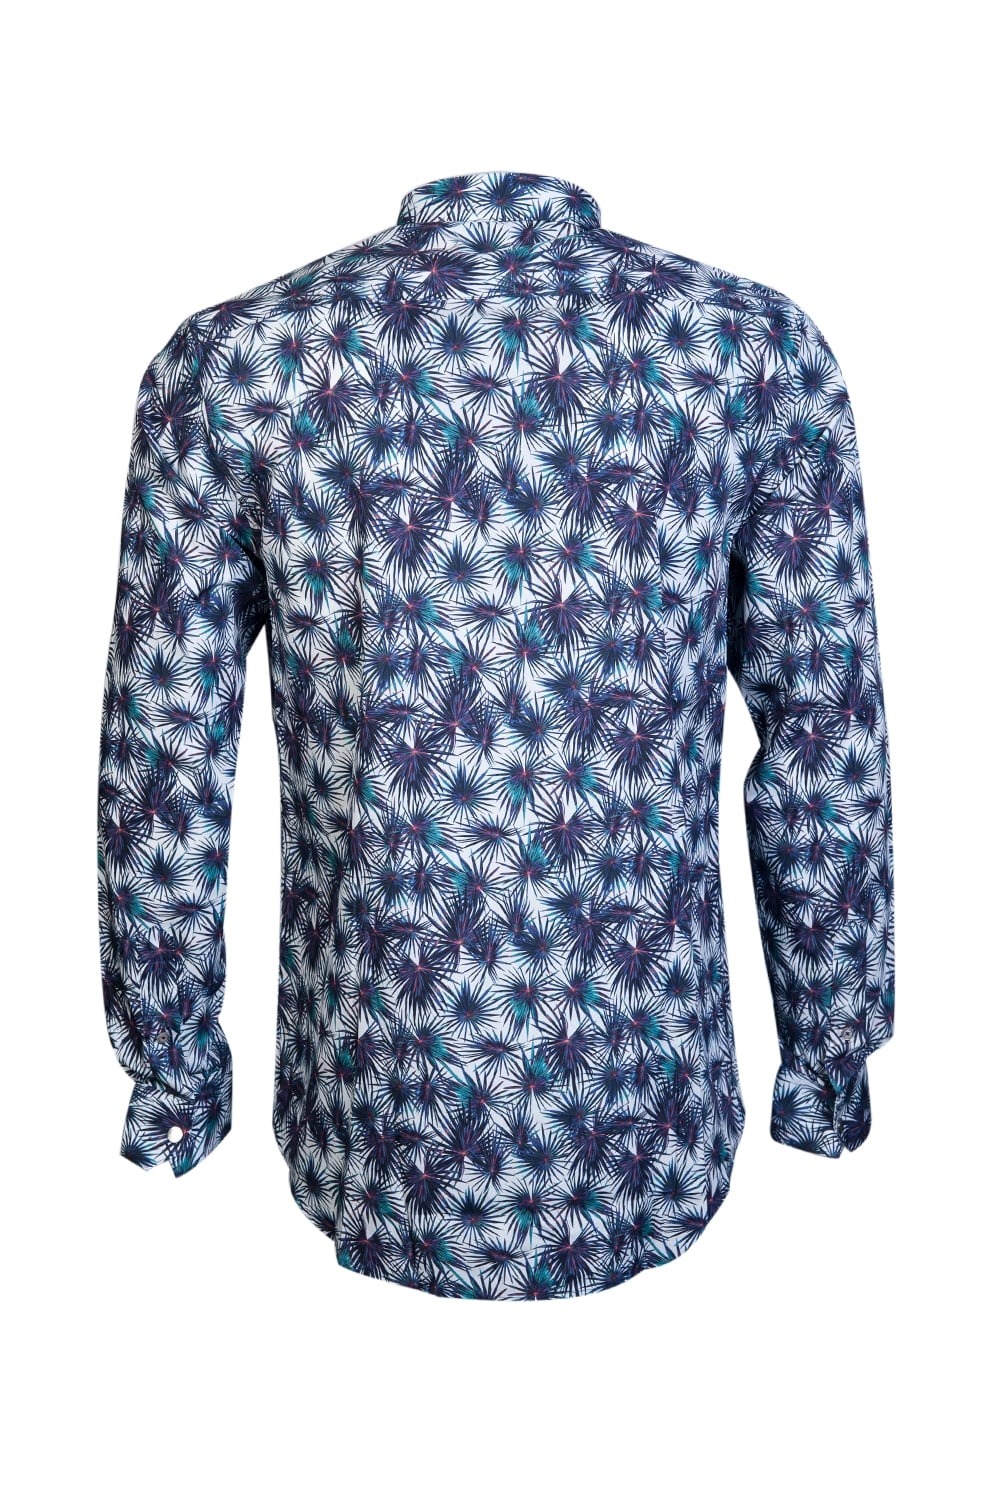 4c70e26809b6d Ted Baker Shirts TA7M GA31 KARAF - Clothing from Sage Clothing UK